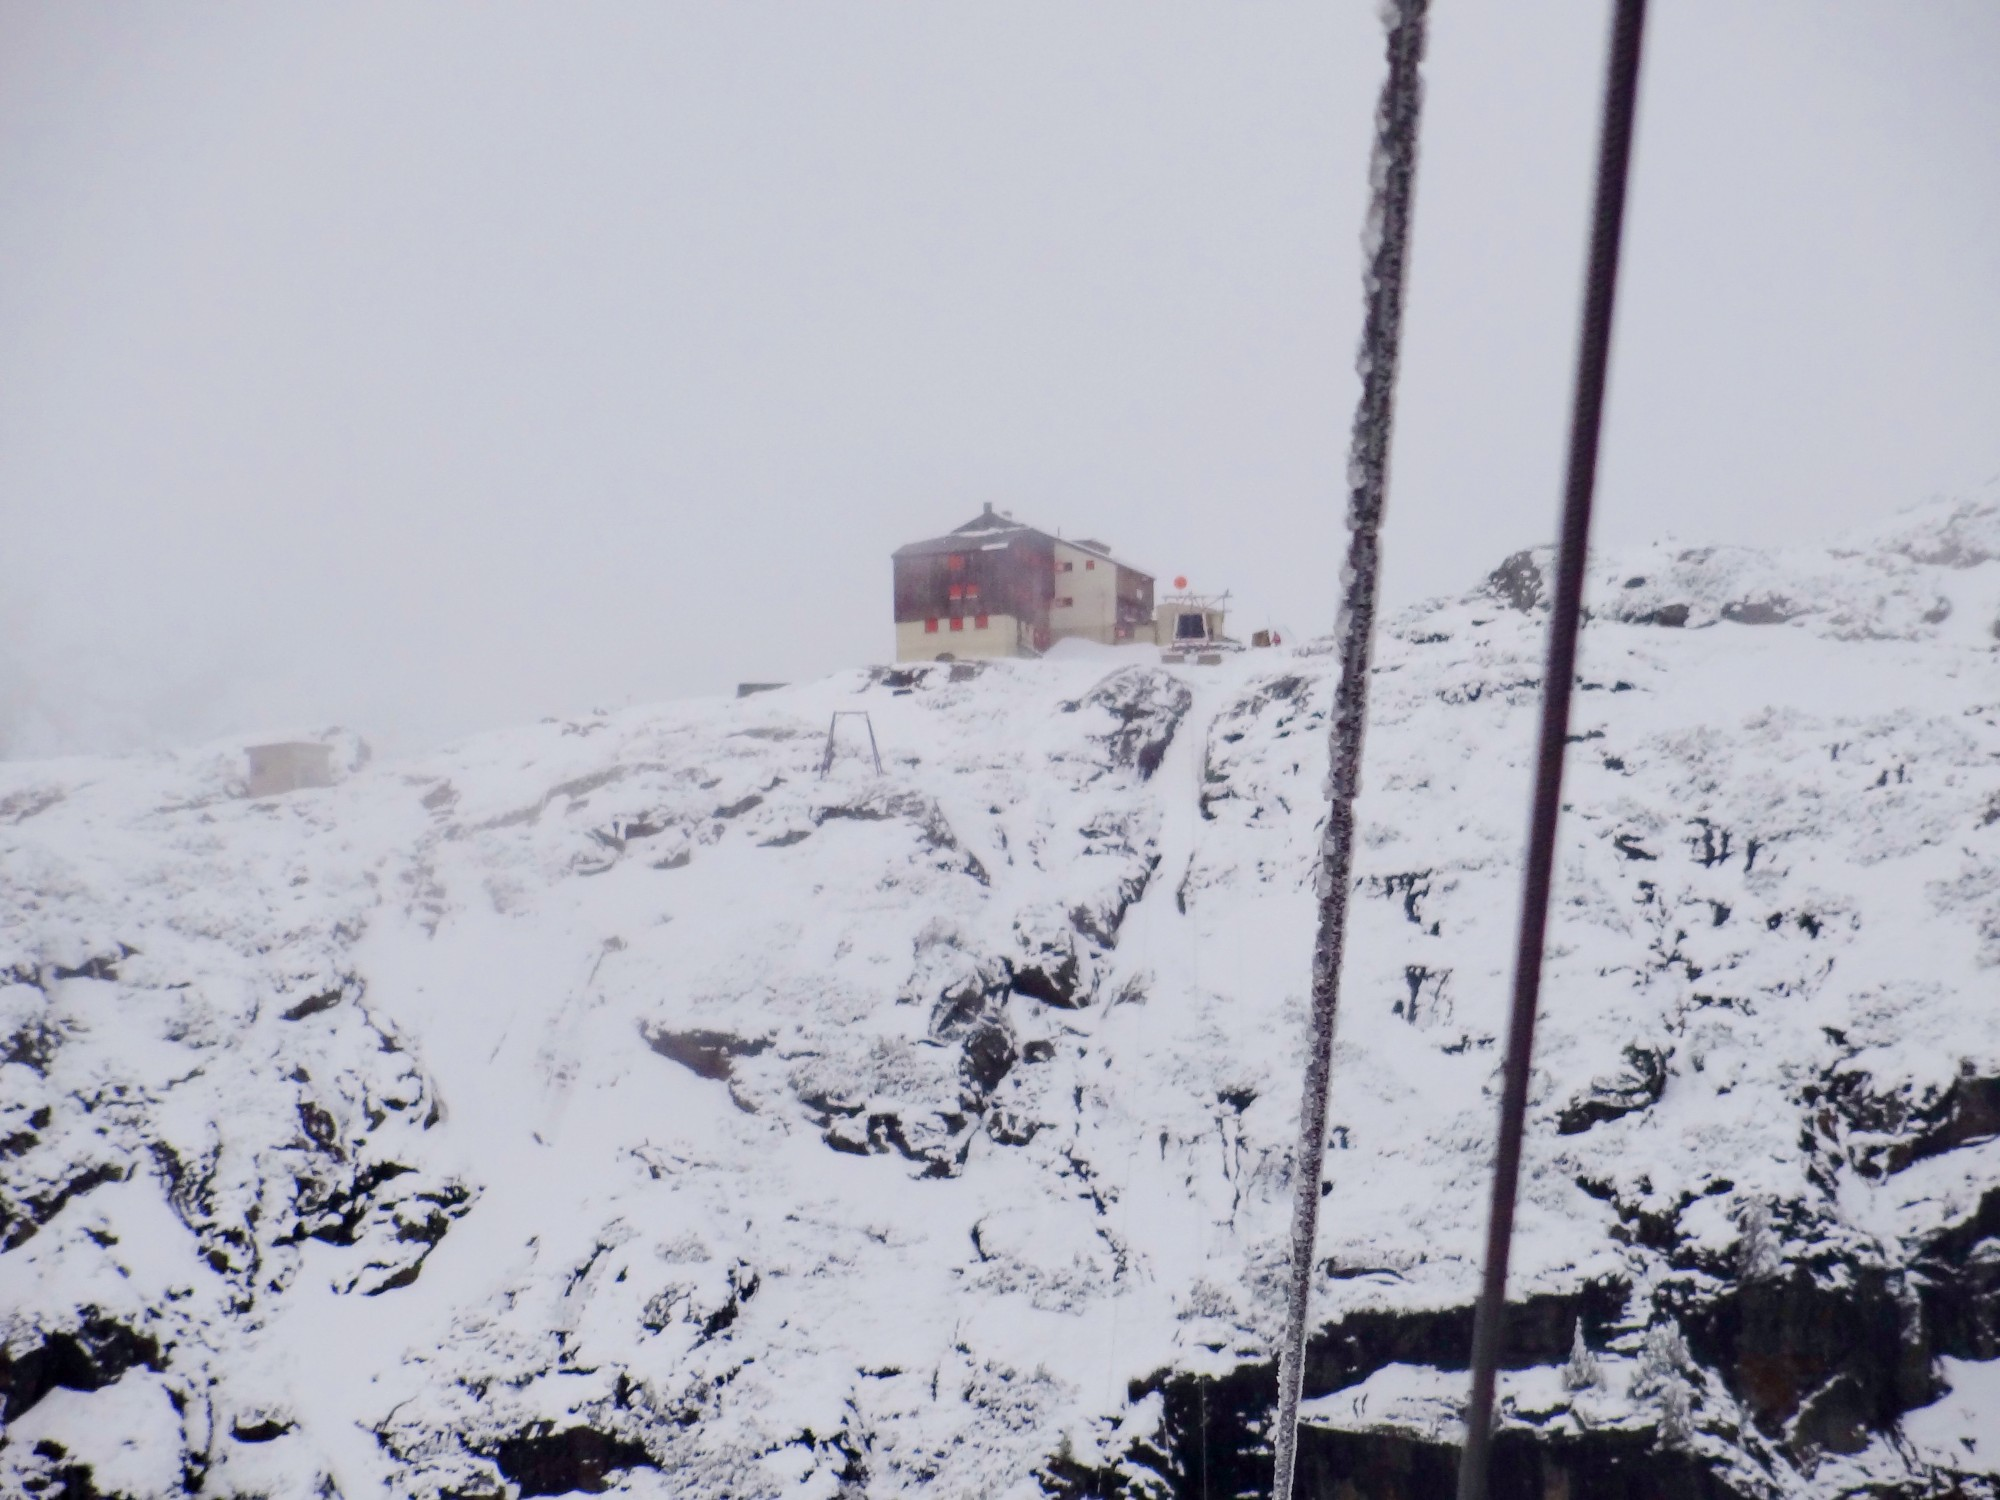 Sulzenau hut in Snow